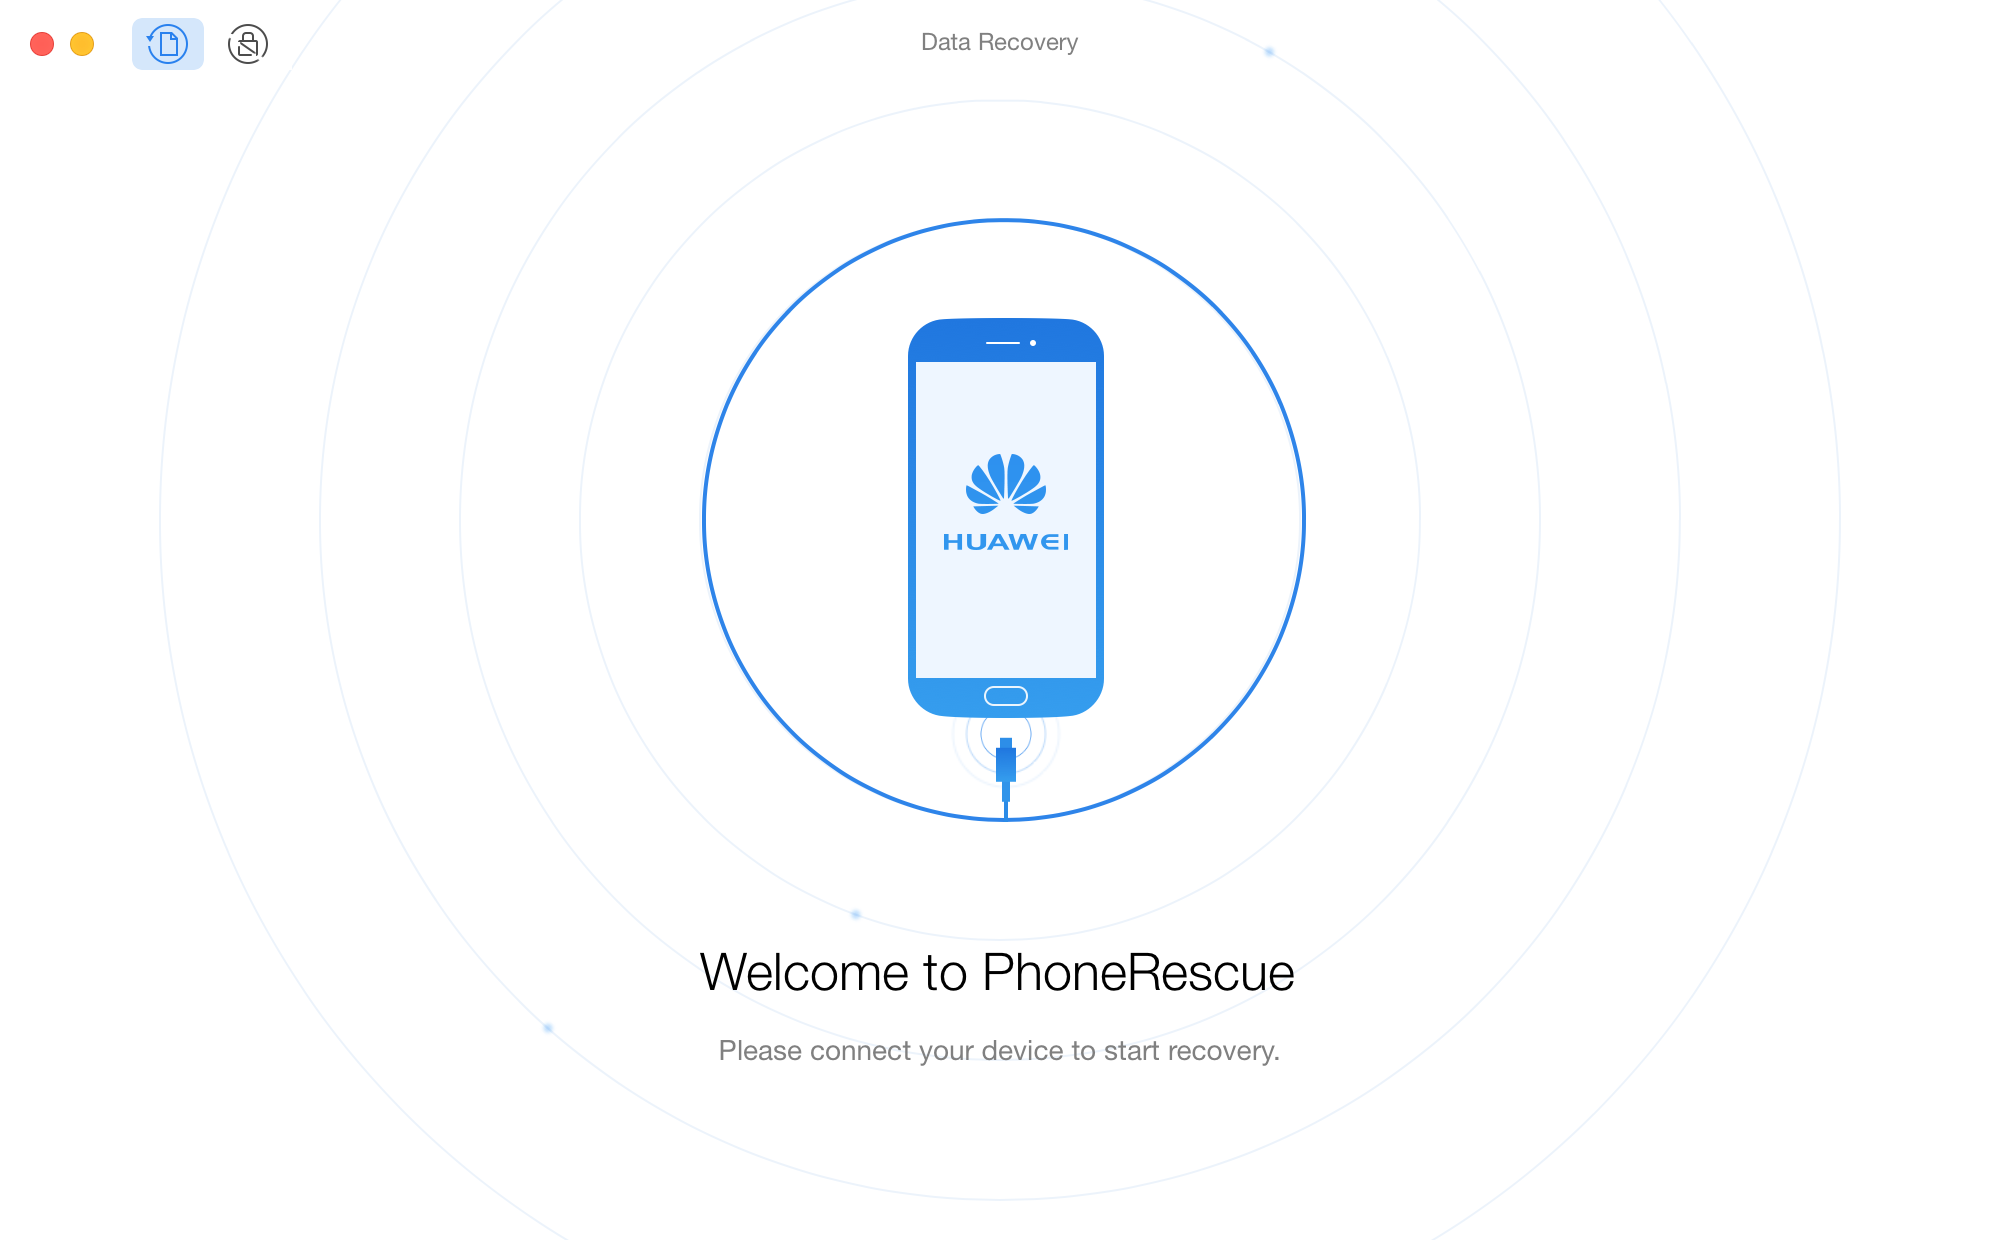 The welcome interface of PhoneRescue for HUAWEI